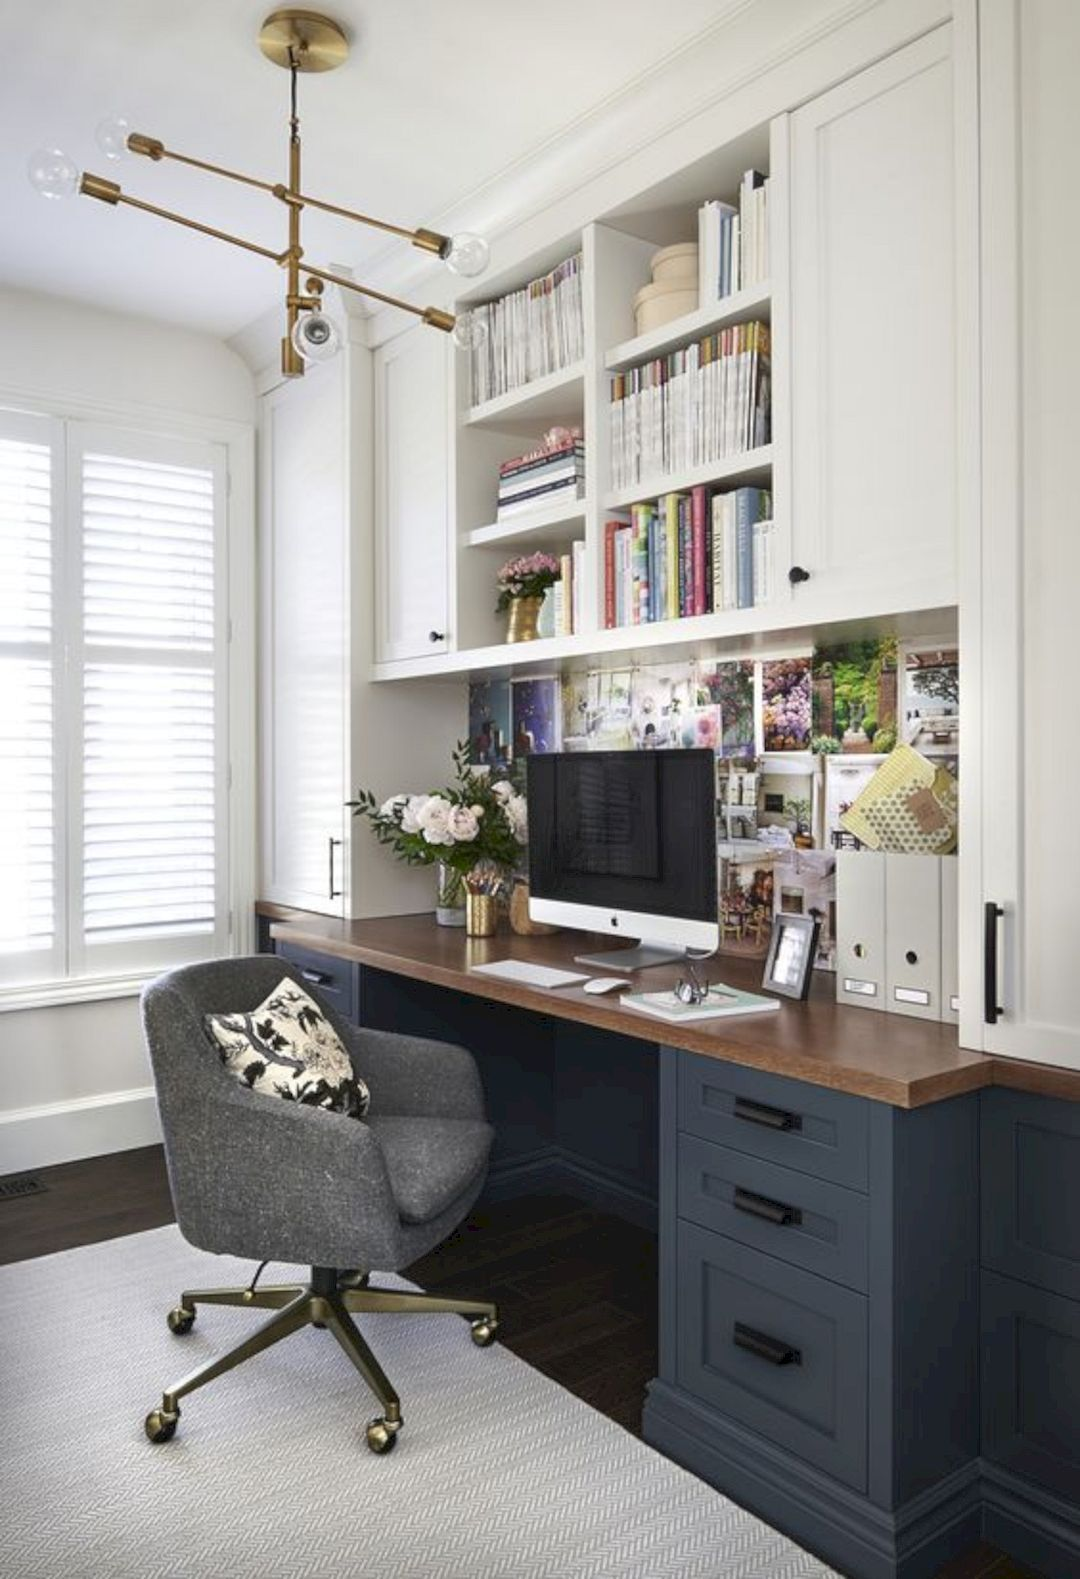 10 Home Office Ideas That Will Almost Make You Want To Become A Workaholic Home Office Design Home Office Furniture Home Office Space